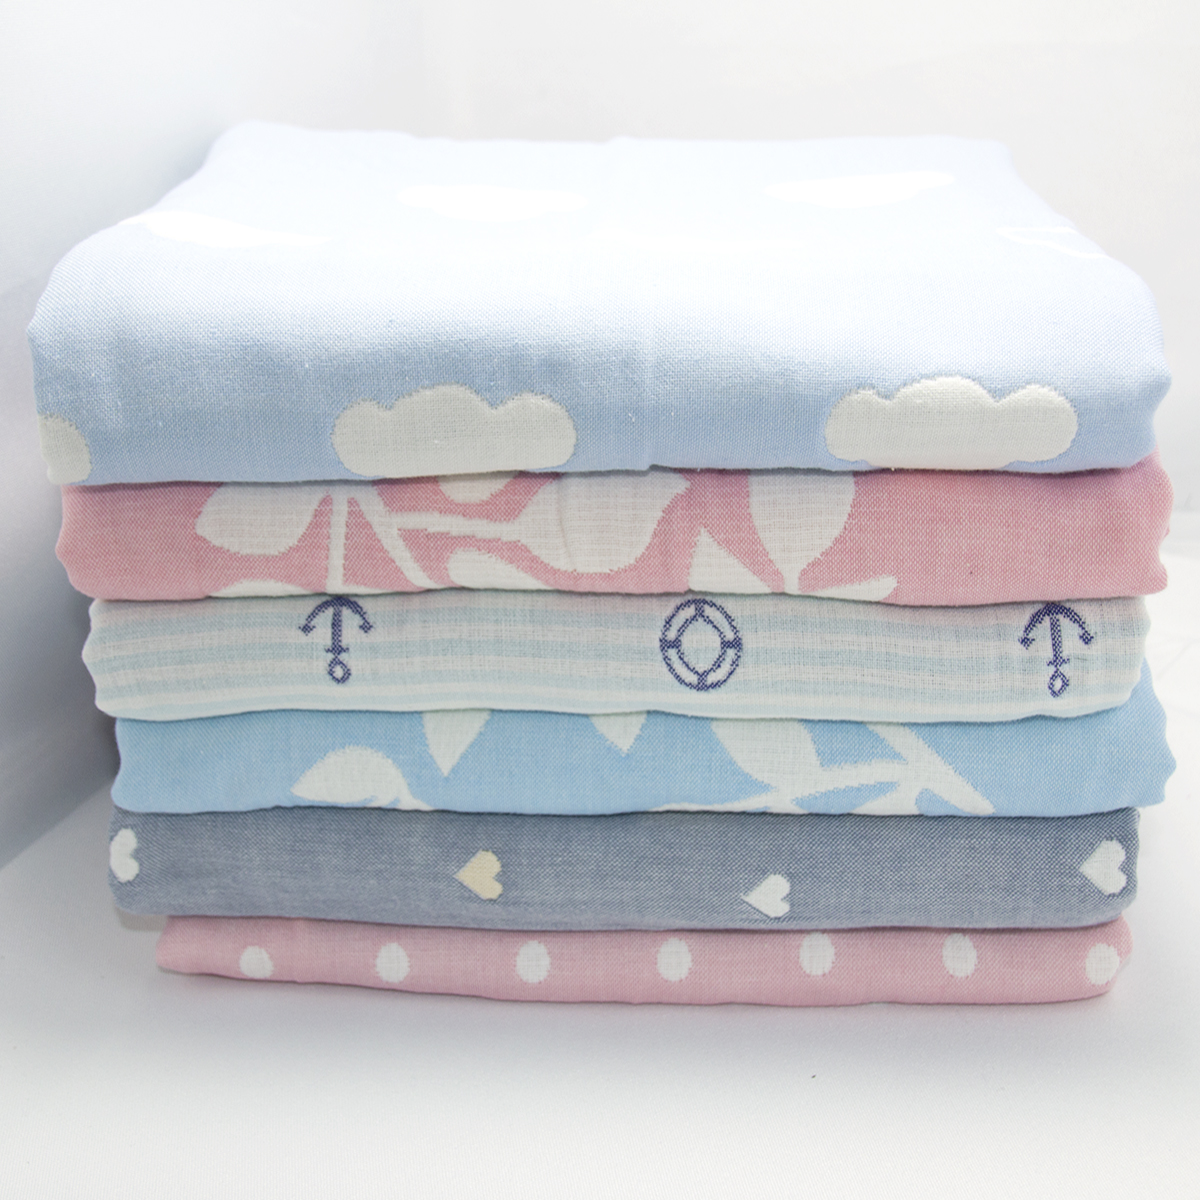 New Soft Baby Blankets 100% Muslin Cotton 6 Layers Newborn Swaddling Four Seasons Baby Swaddle Bedding Receiving Blanket 2 Size